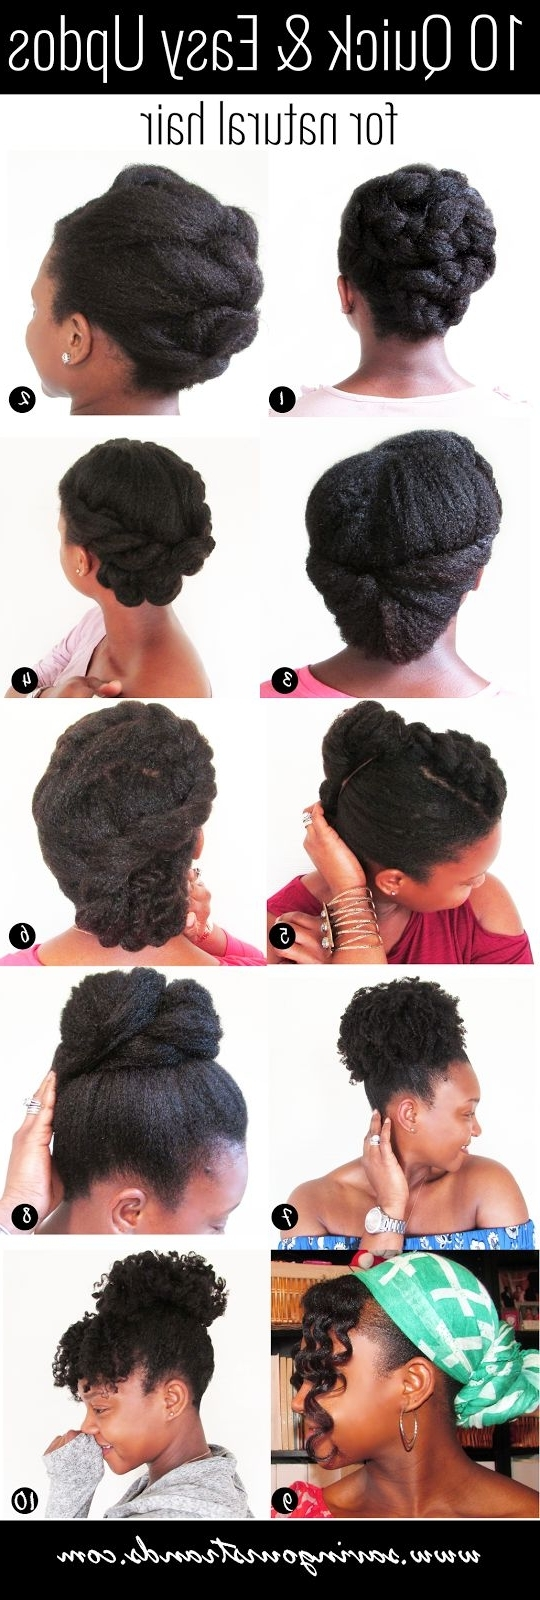 311 Best Short & Medium Natural Hair Styles Images On Pinterest Inside Quick Updos For Short Black Hair (View 10 of 15)